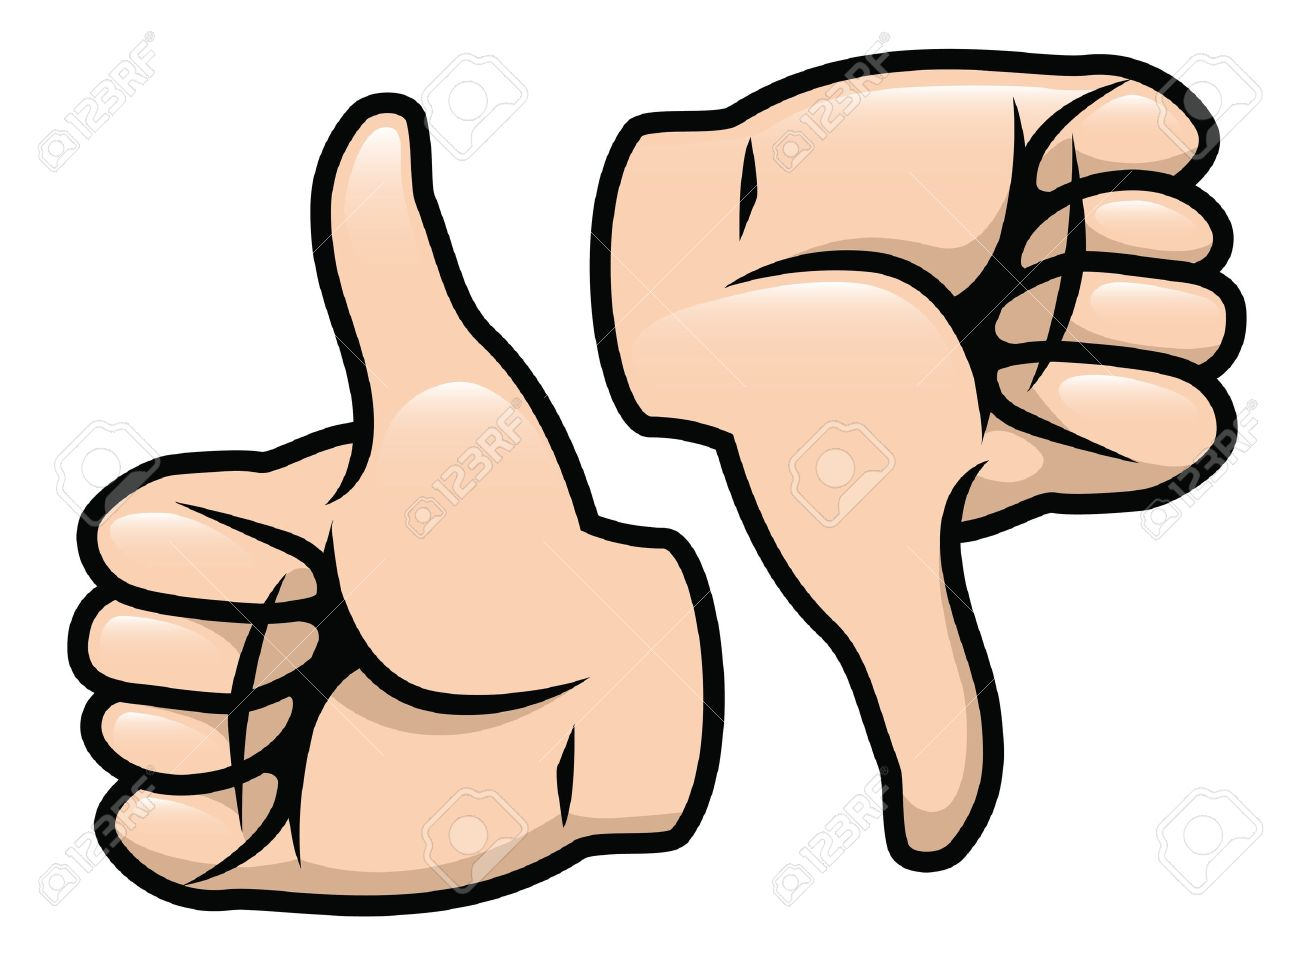 A cartoon vector drawing of a thumbs up and a thumbs down.